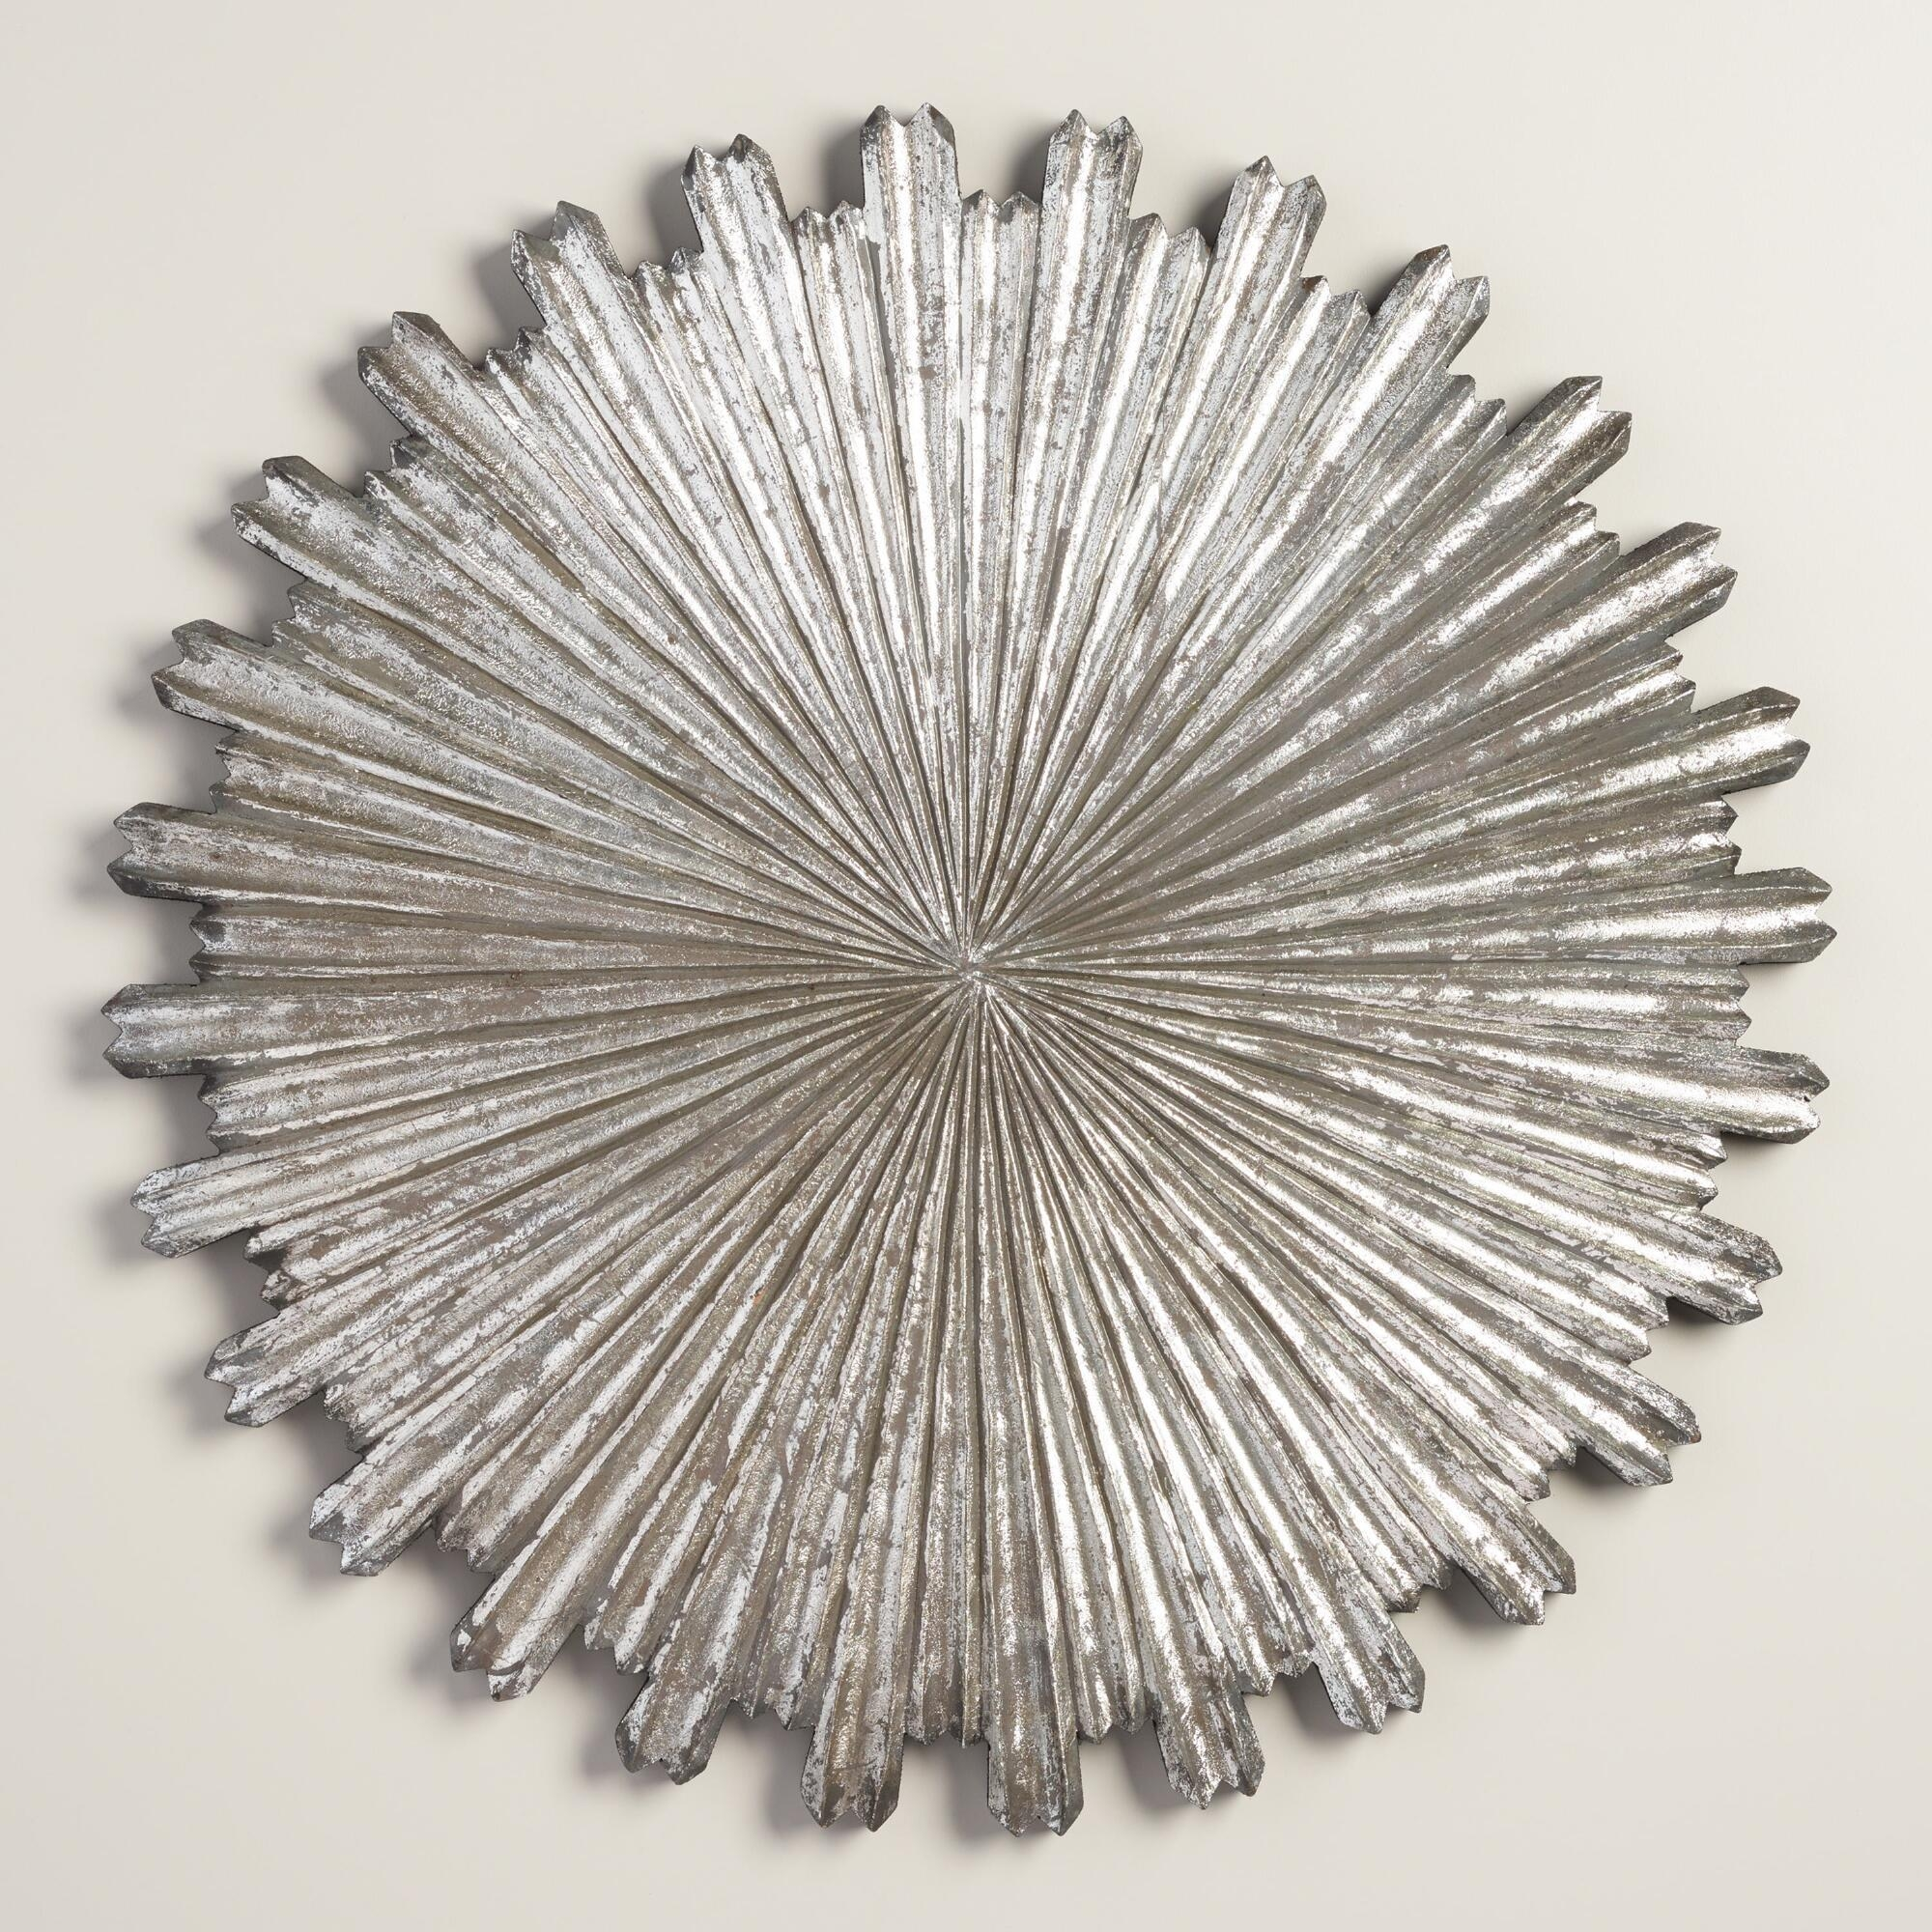 Wall Art Designs: Sunburst Wall Art Silver Wall Decor On Metal Inside Metal Medallion Wall Art (Image 10 of 20)